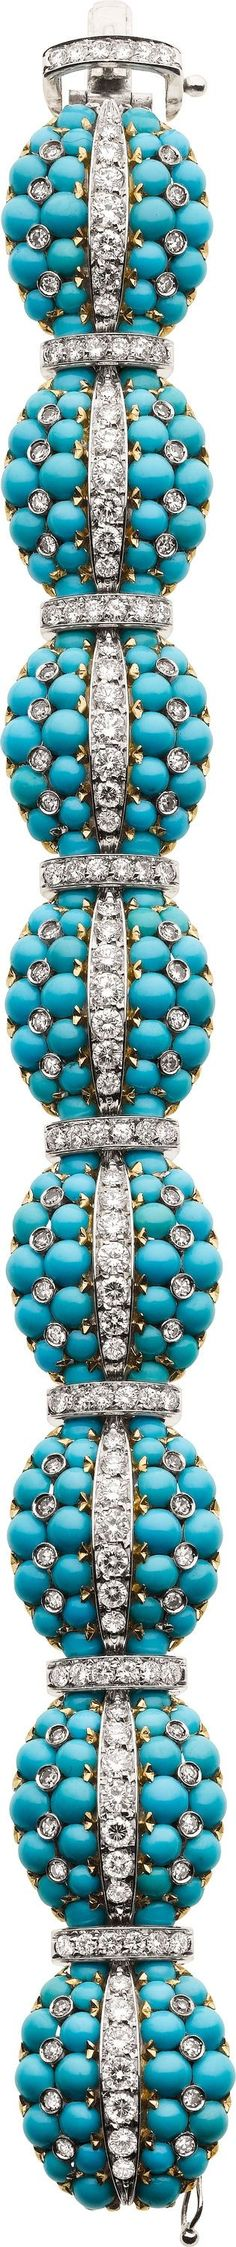 Turquoise, Diamond, Gold Bracelet. ... Estate JewelryBracelets | Lot #58452 | Heritage Auctions